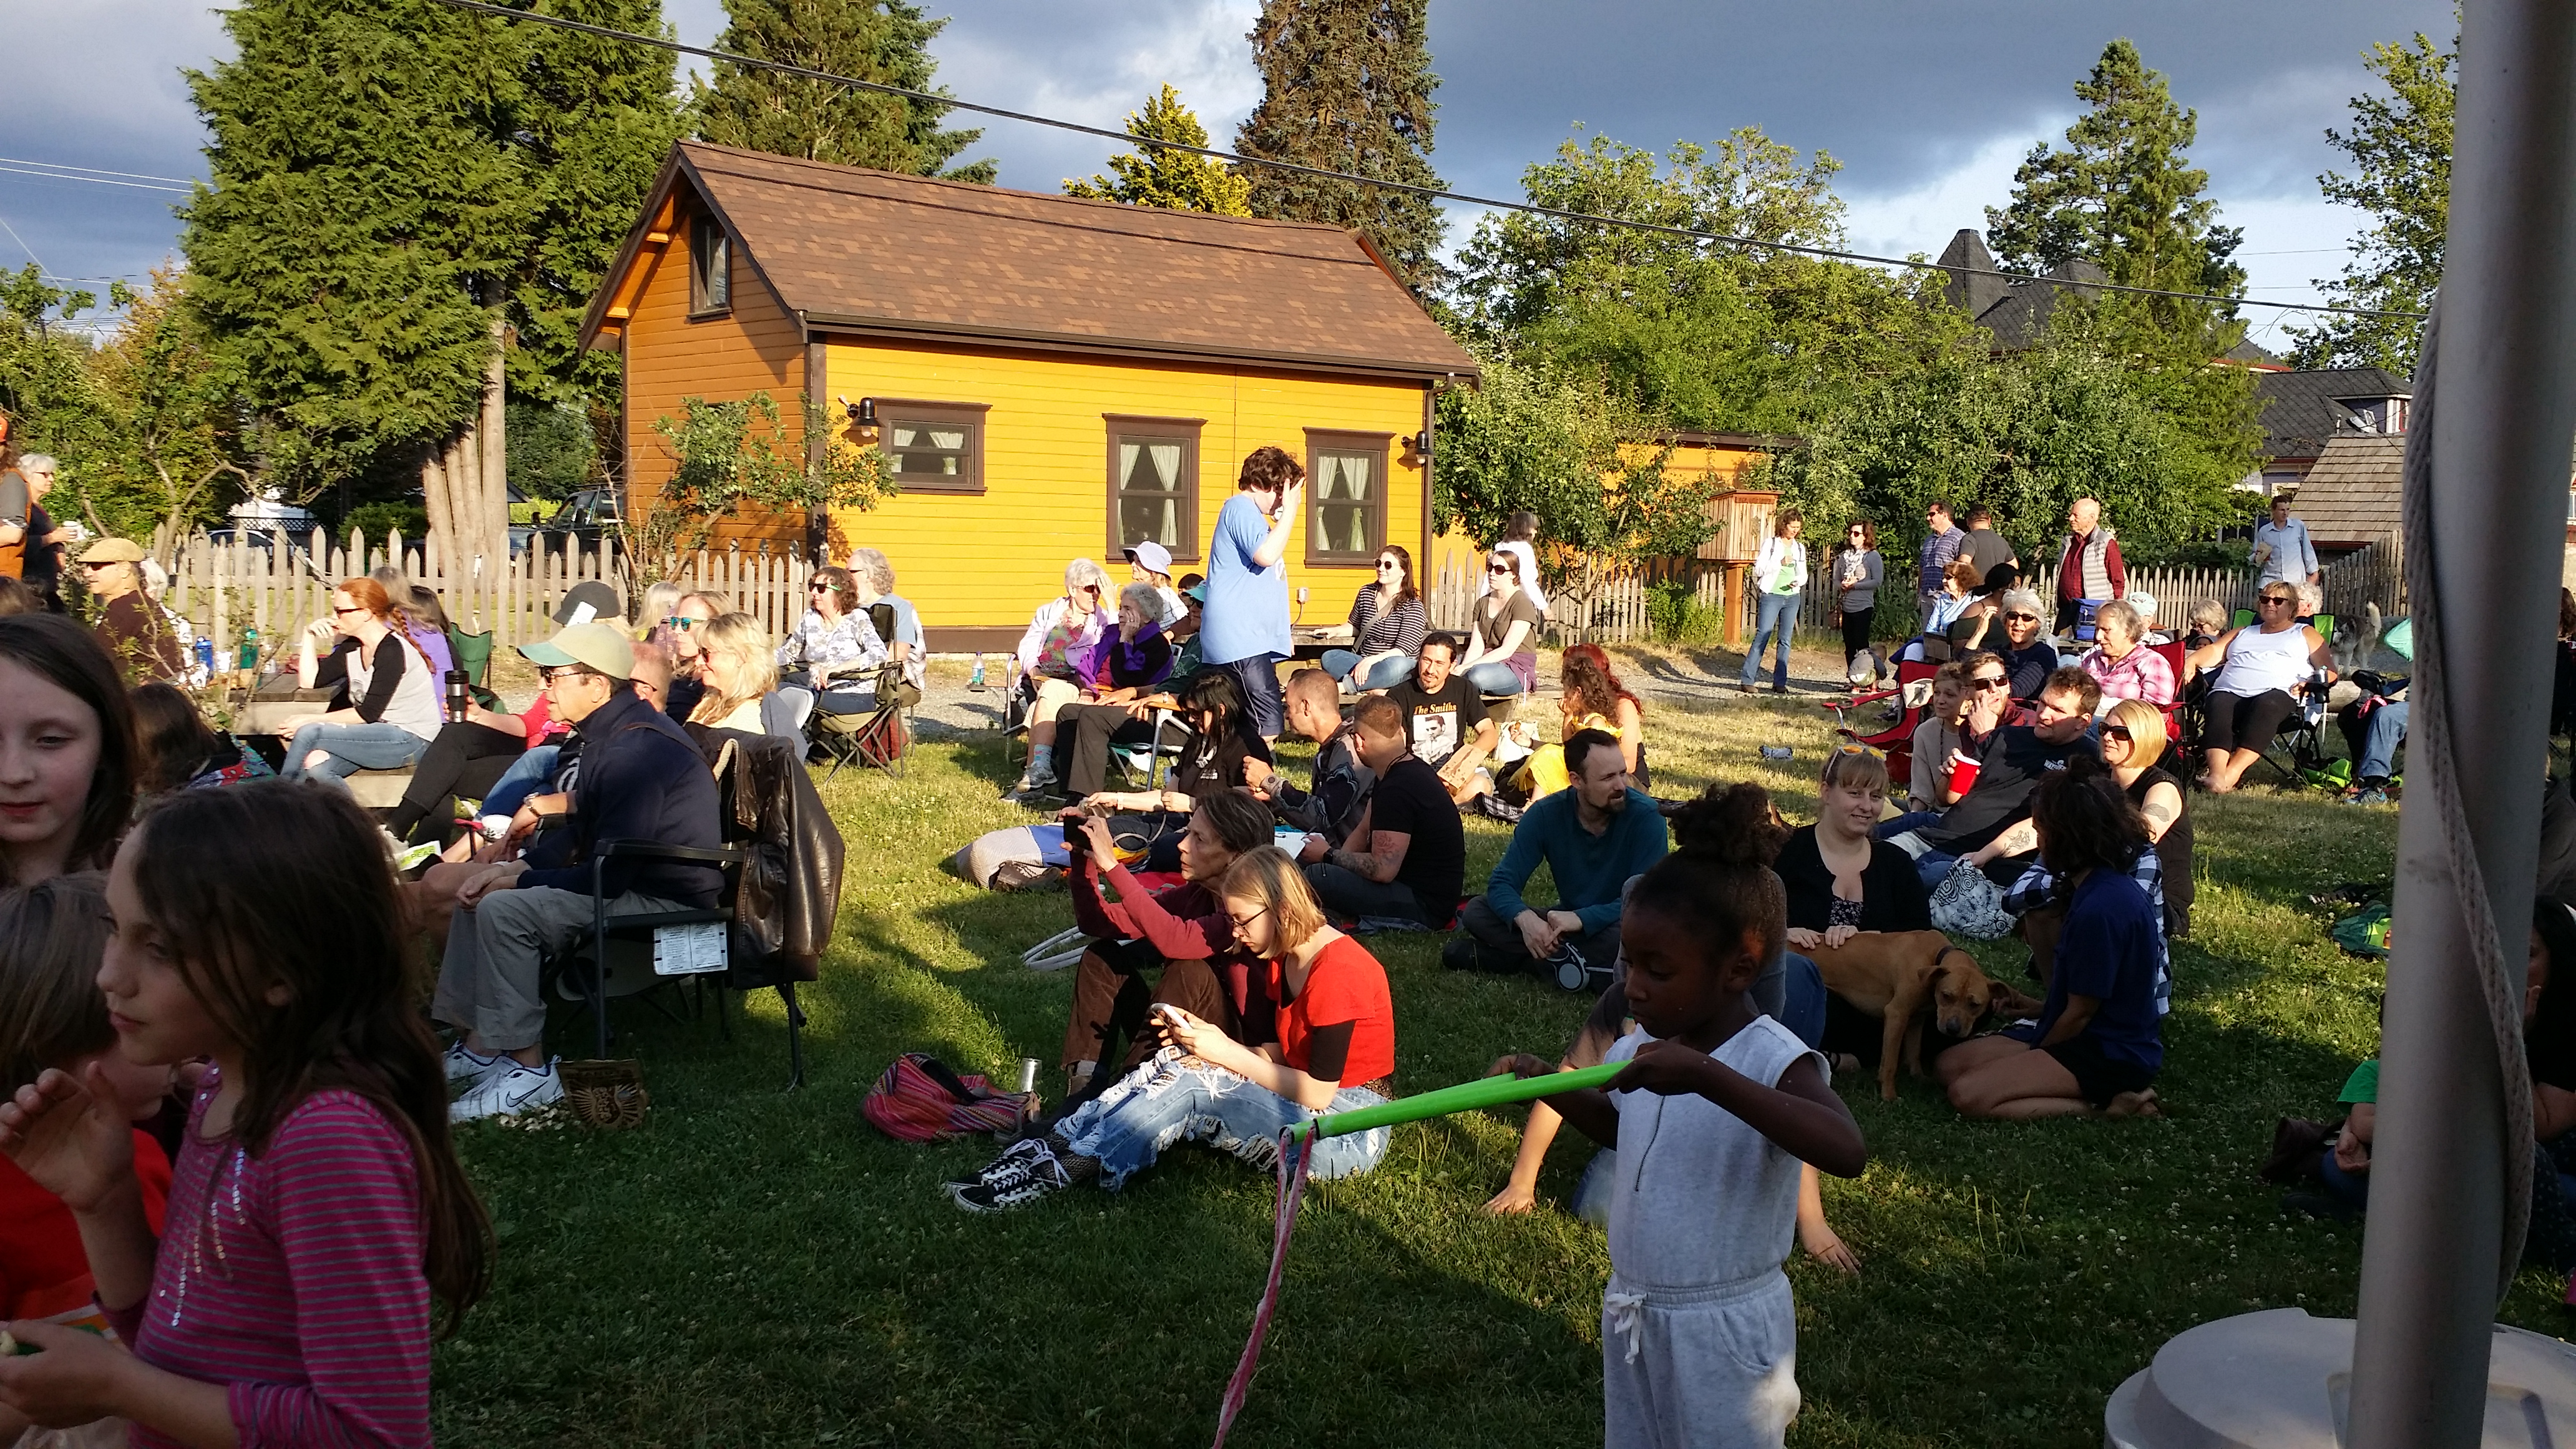 Summer gathering and music